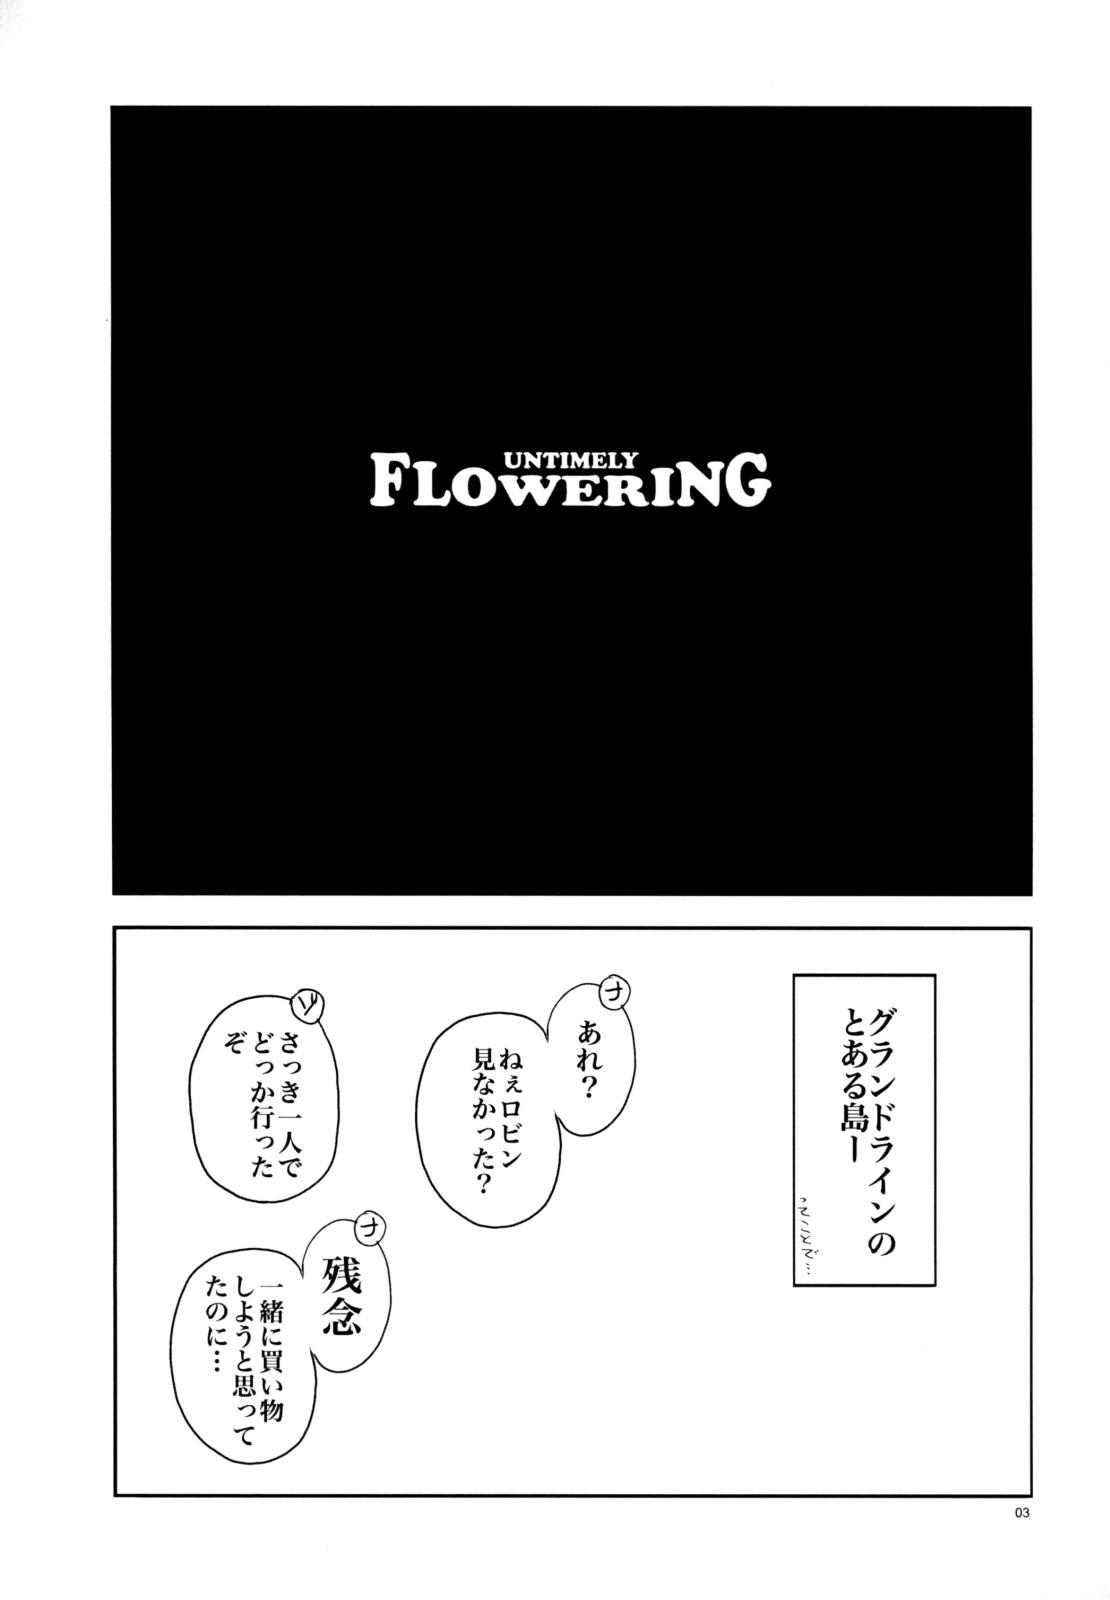 Untimely Flowering 1